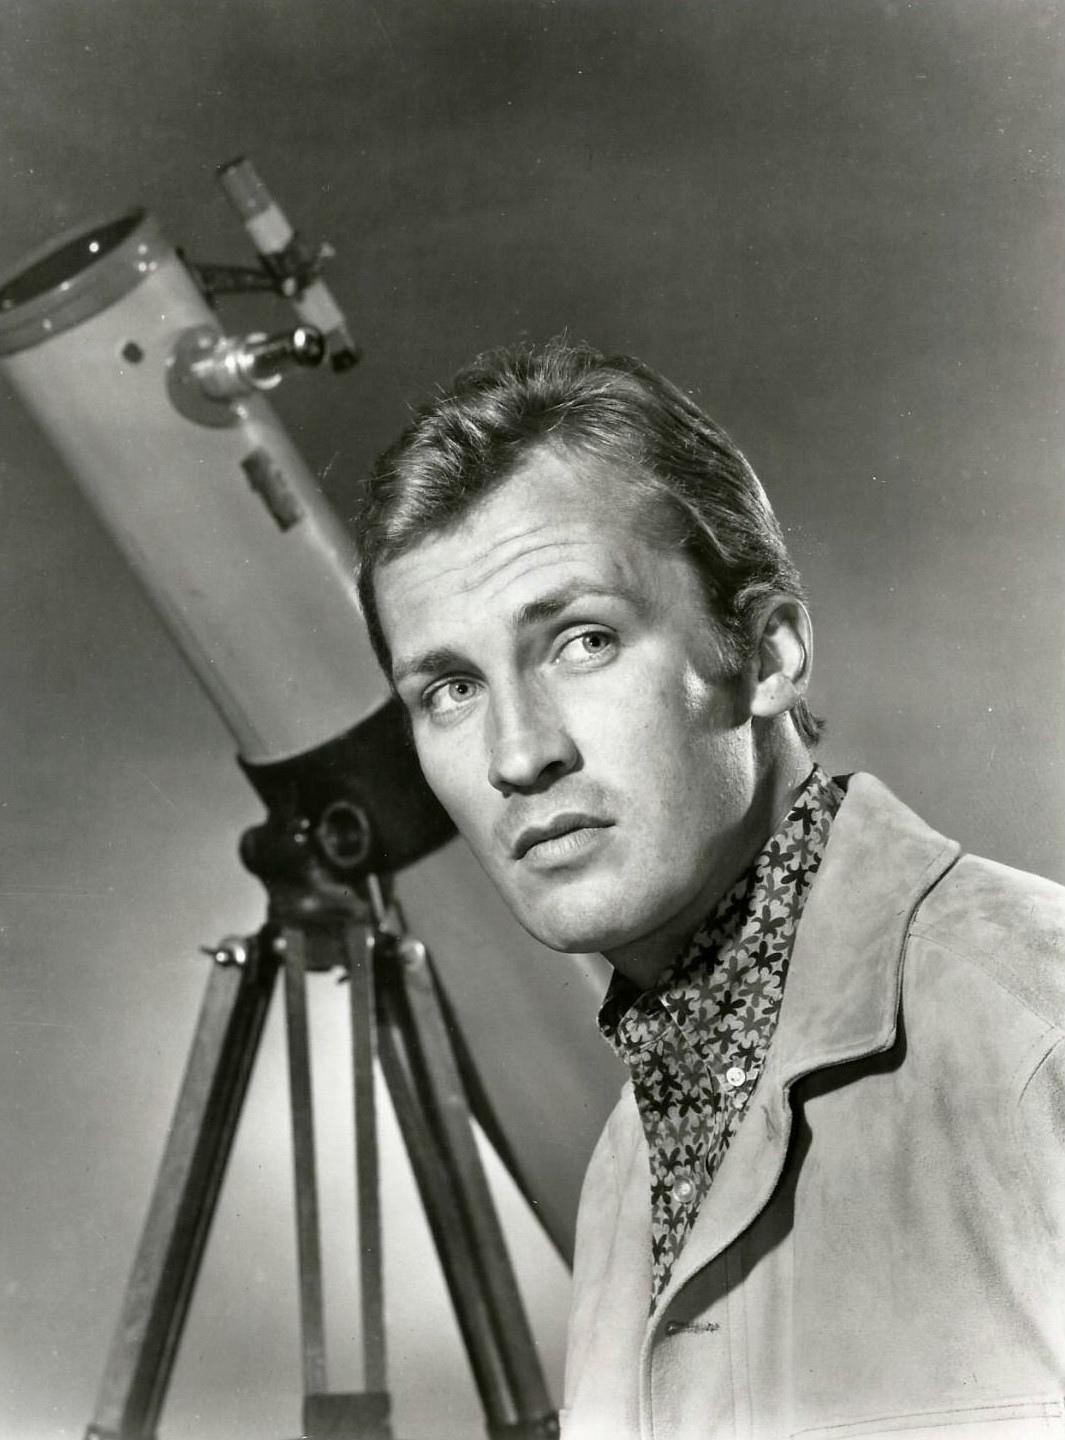 The_Invaders_Roy_Thinnes.jpg